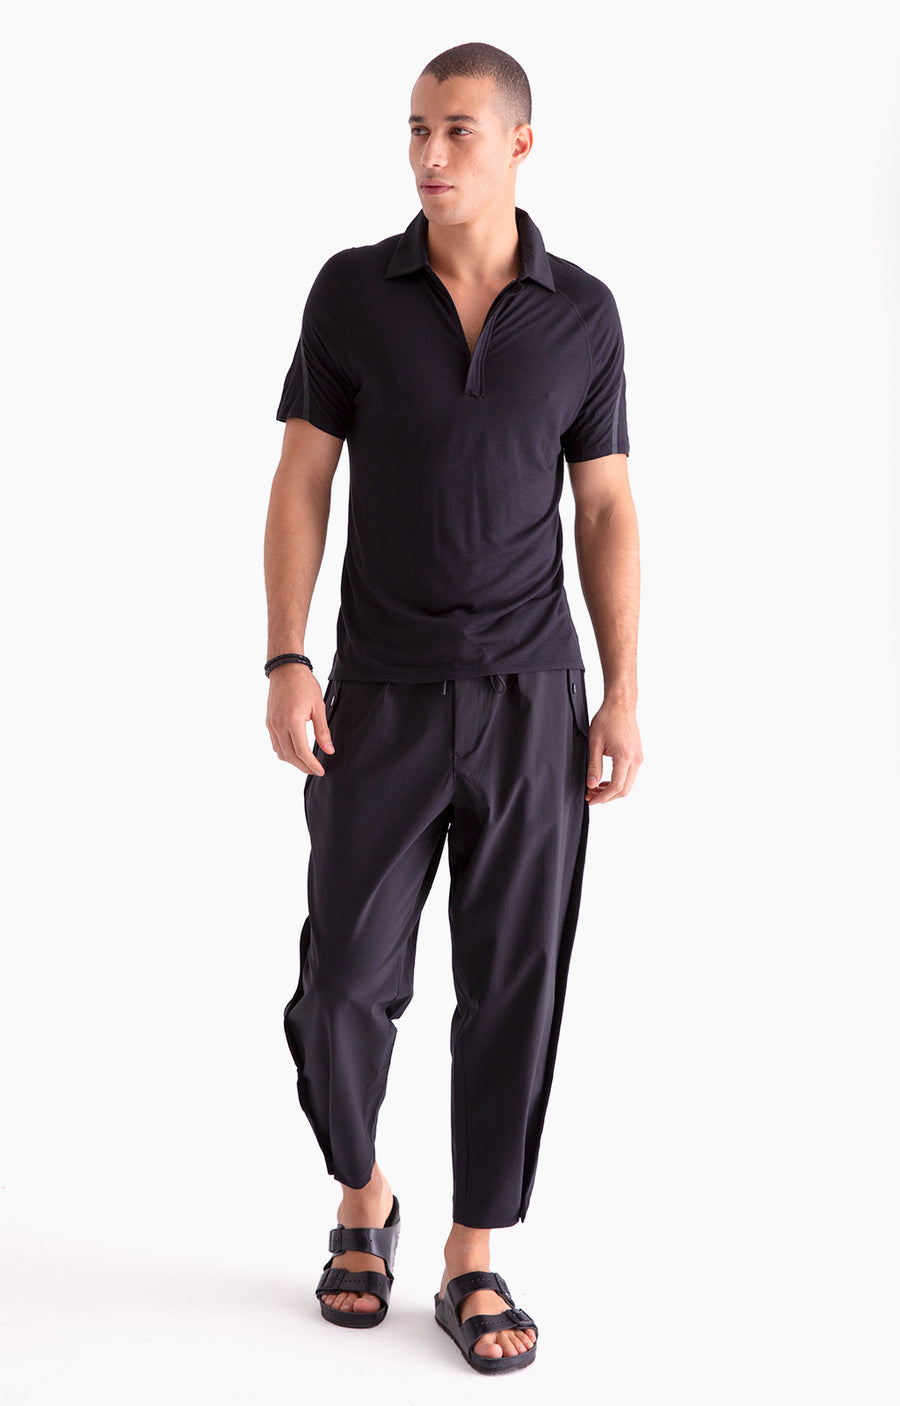 Wanderlust - Stretch-Tech Travel Trousers in Black